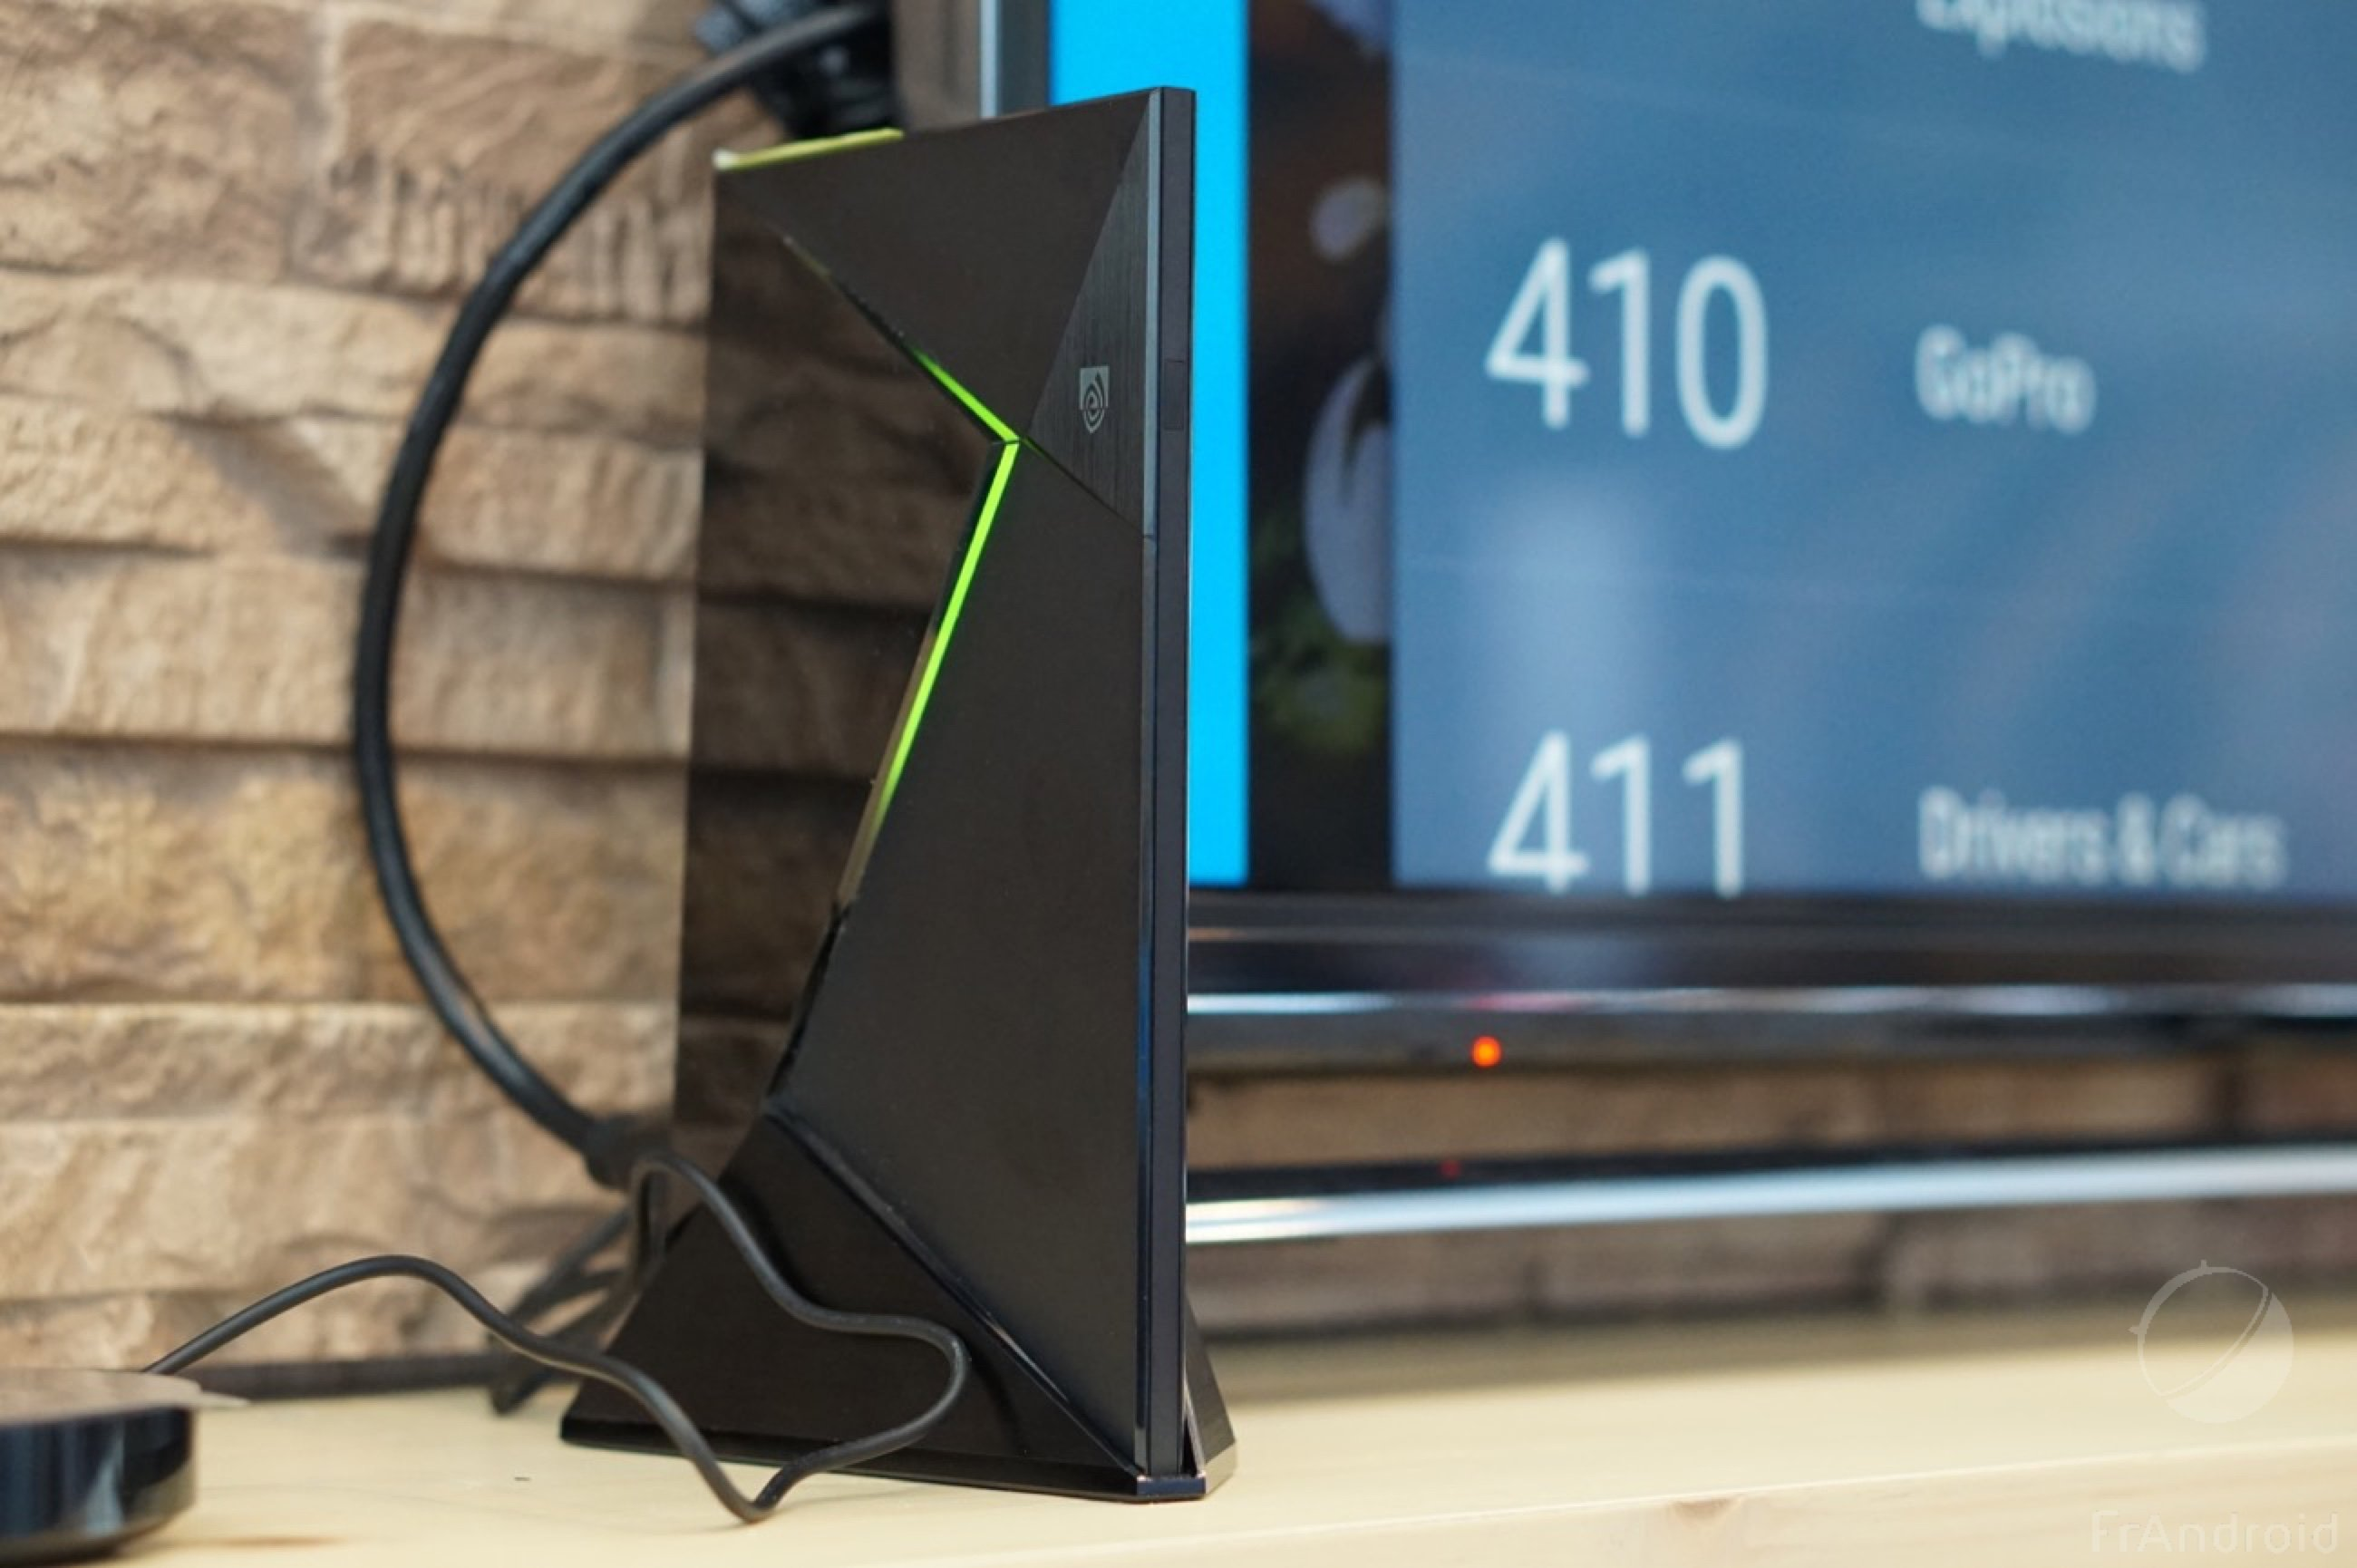 Prise en main de la NVIDIA Shield Android TV, la mini-console a du potentiel